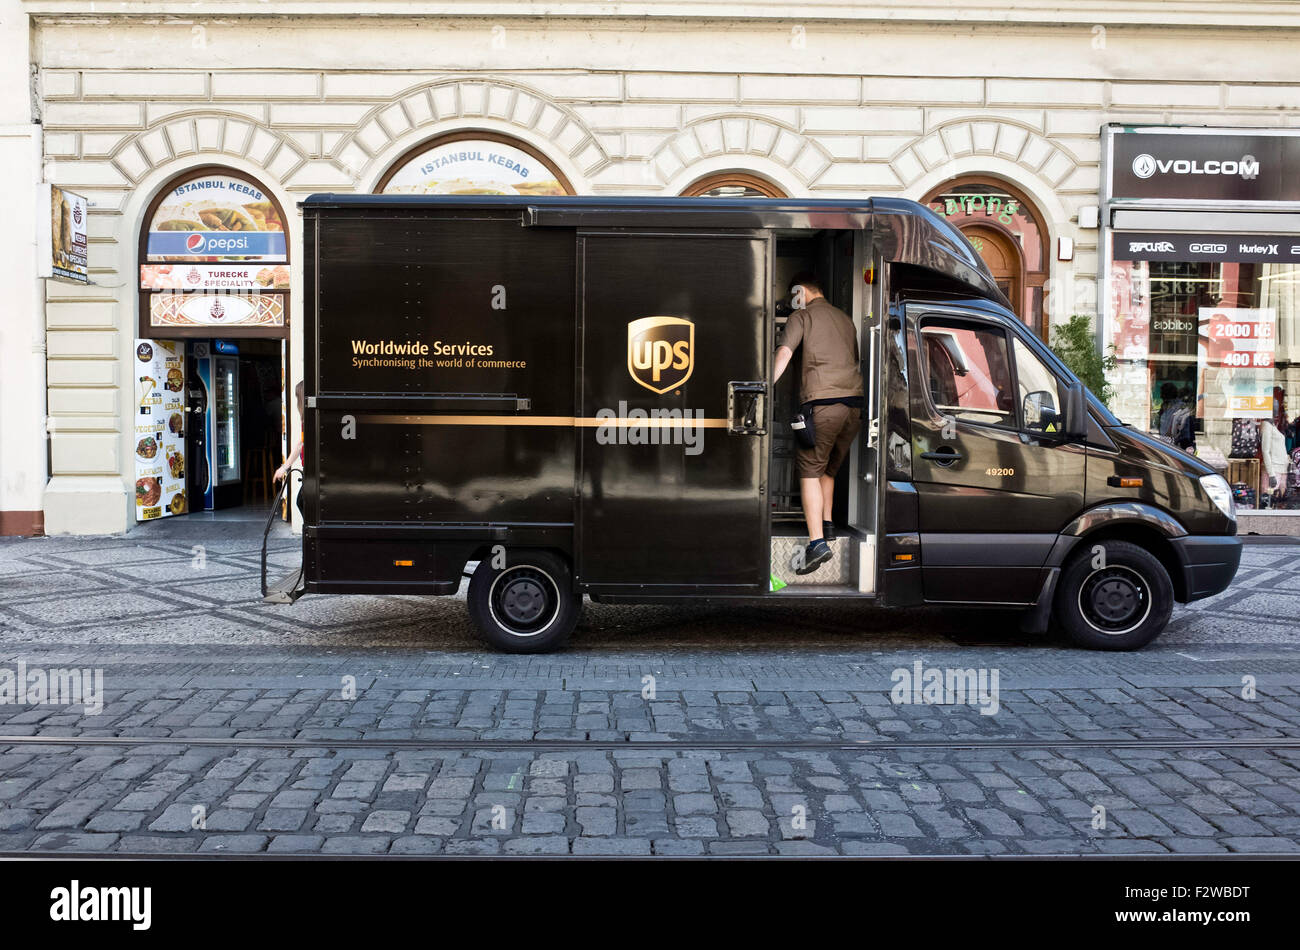 UPS mail delivery van Photo Stock